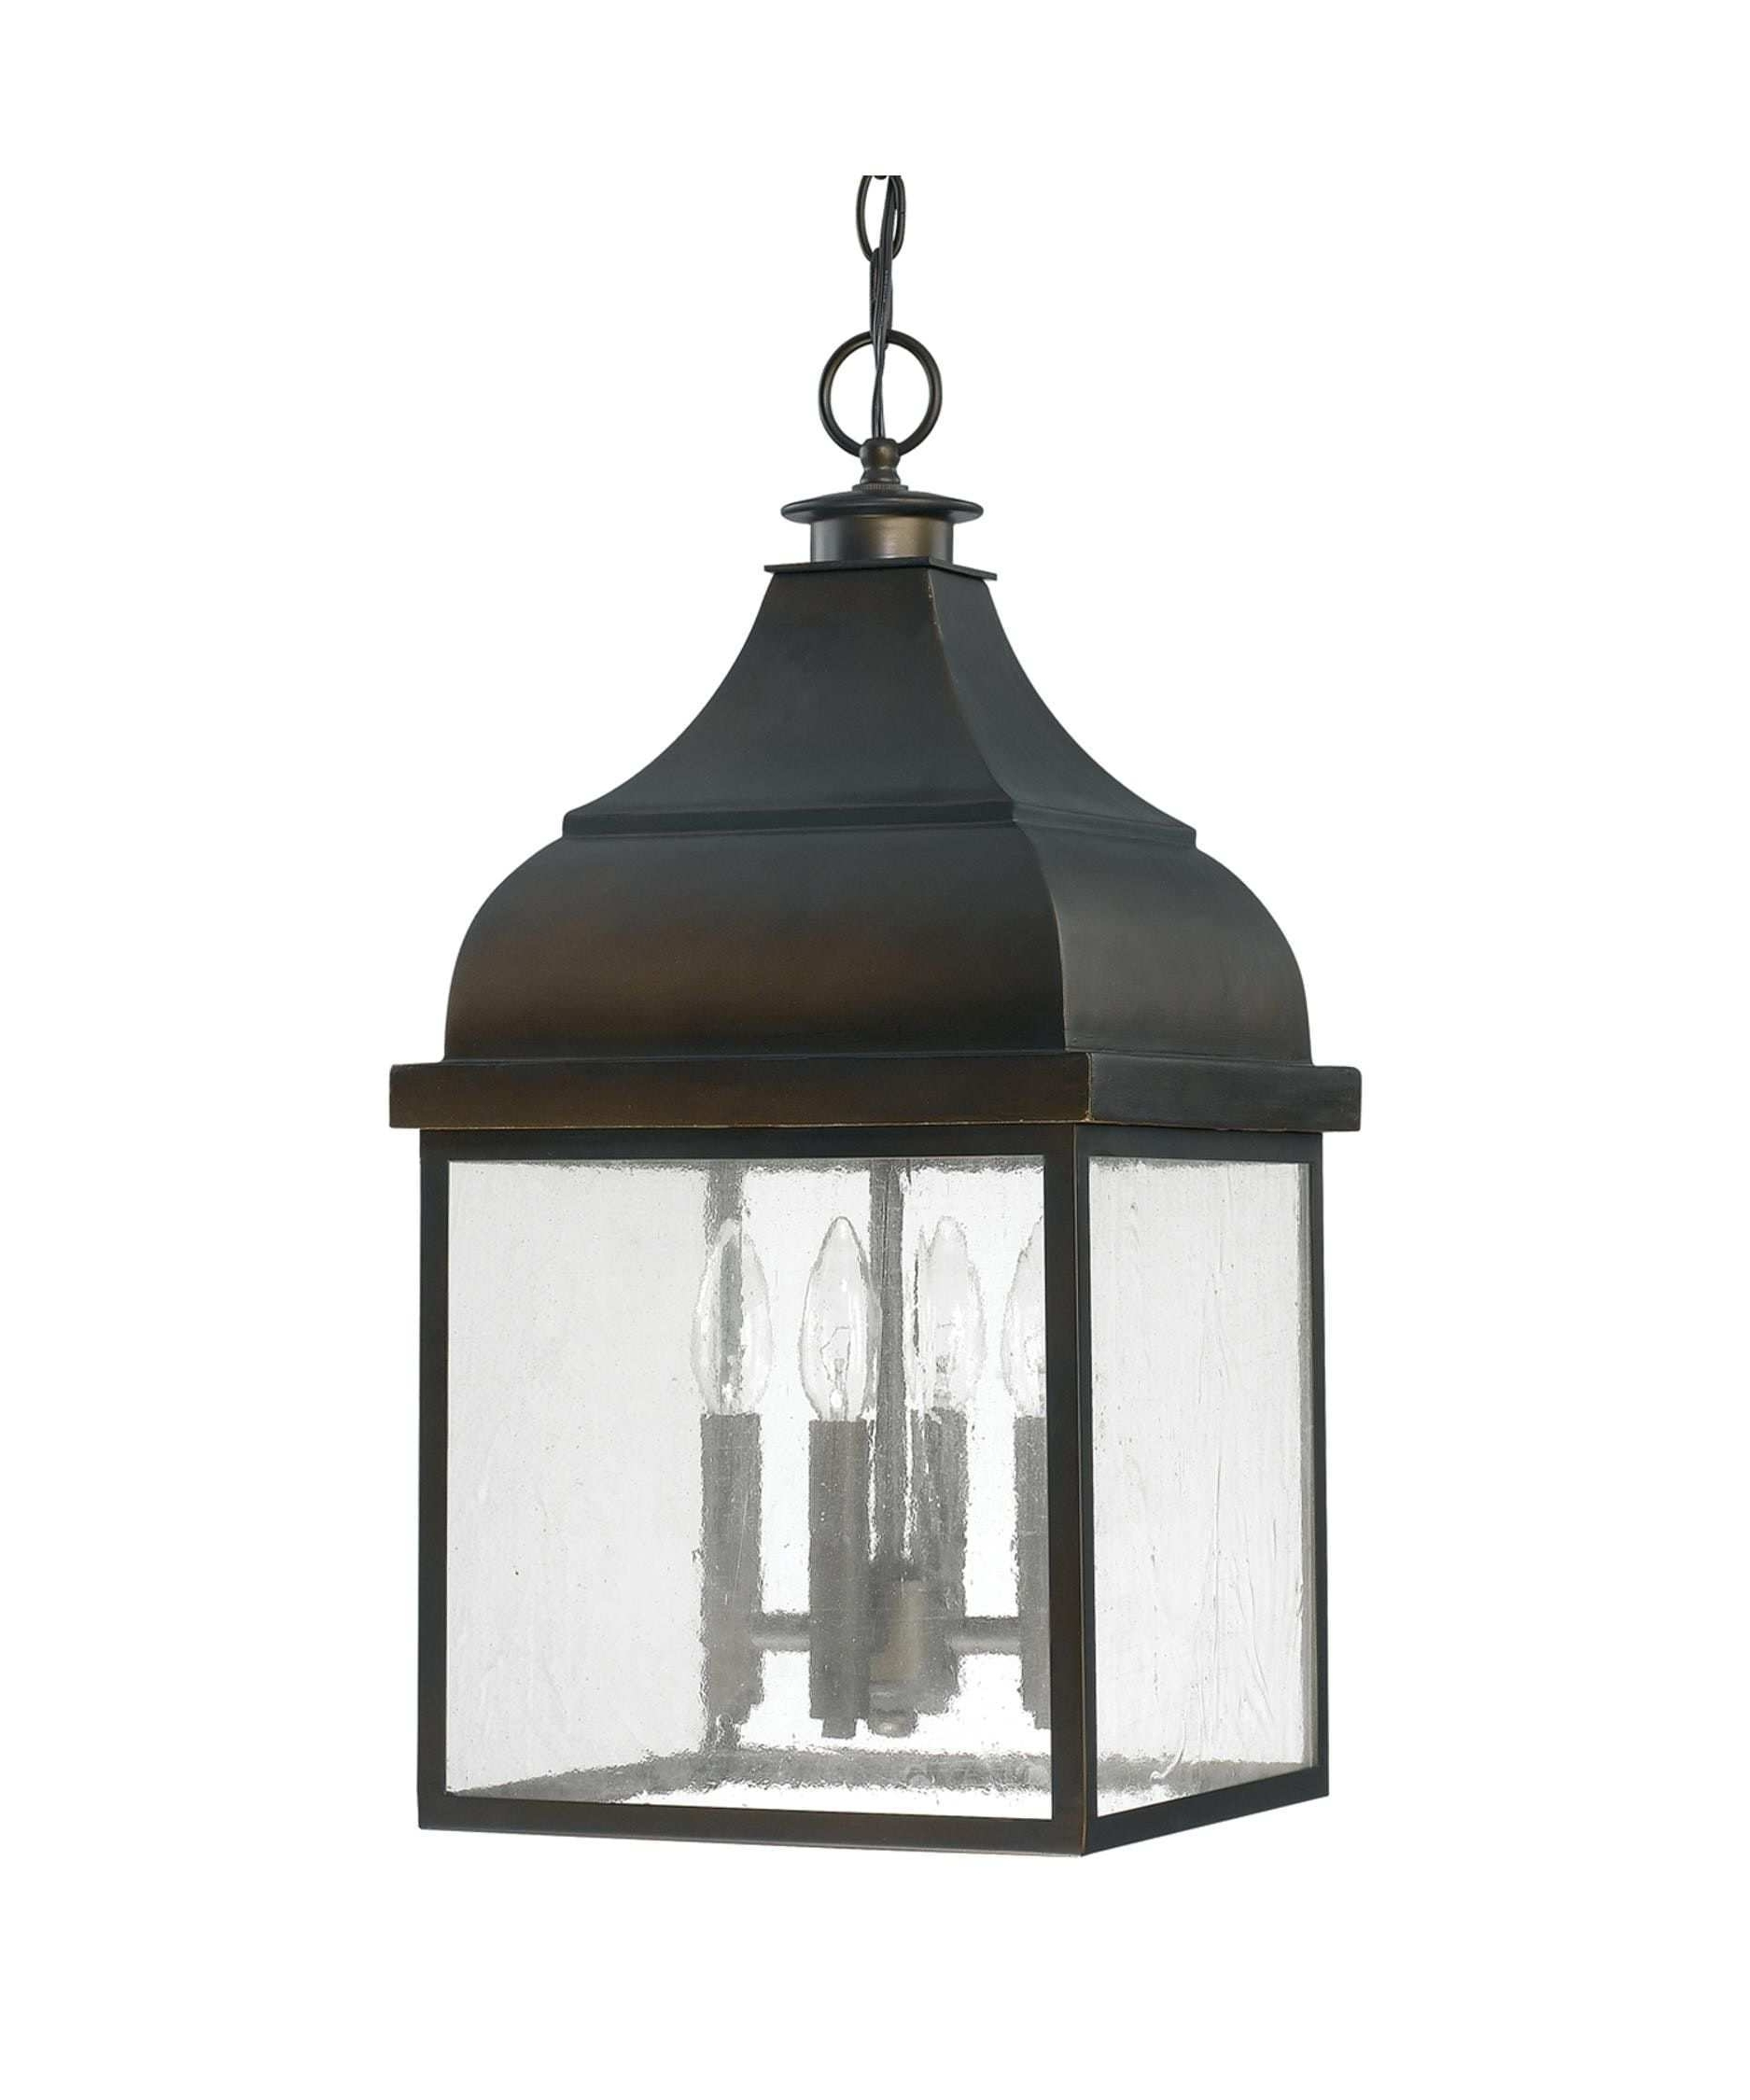 Outdoor Lighting Fixtures At Wayfair Within Latest Wayfair Ceiling Light Fixtures Beautiful Outdoor Hanging Light (View 18 of 20)